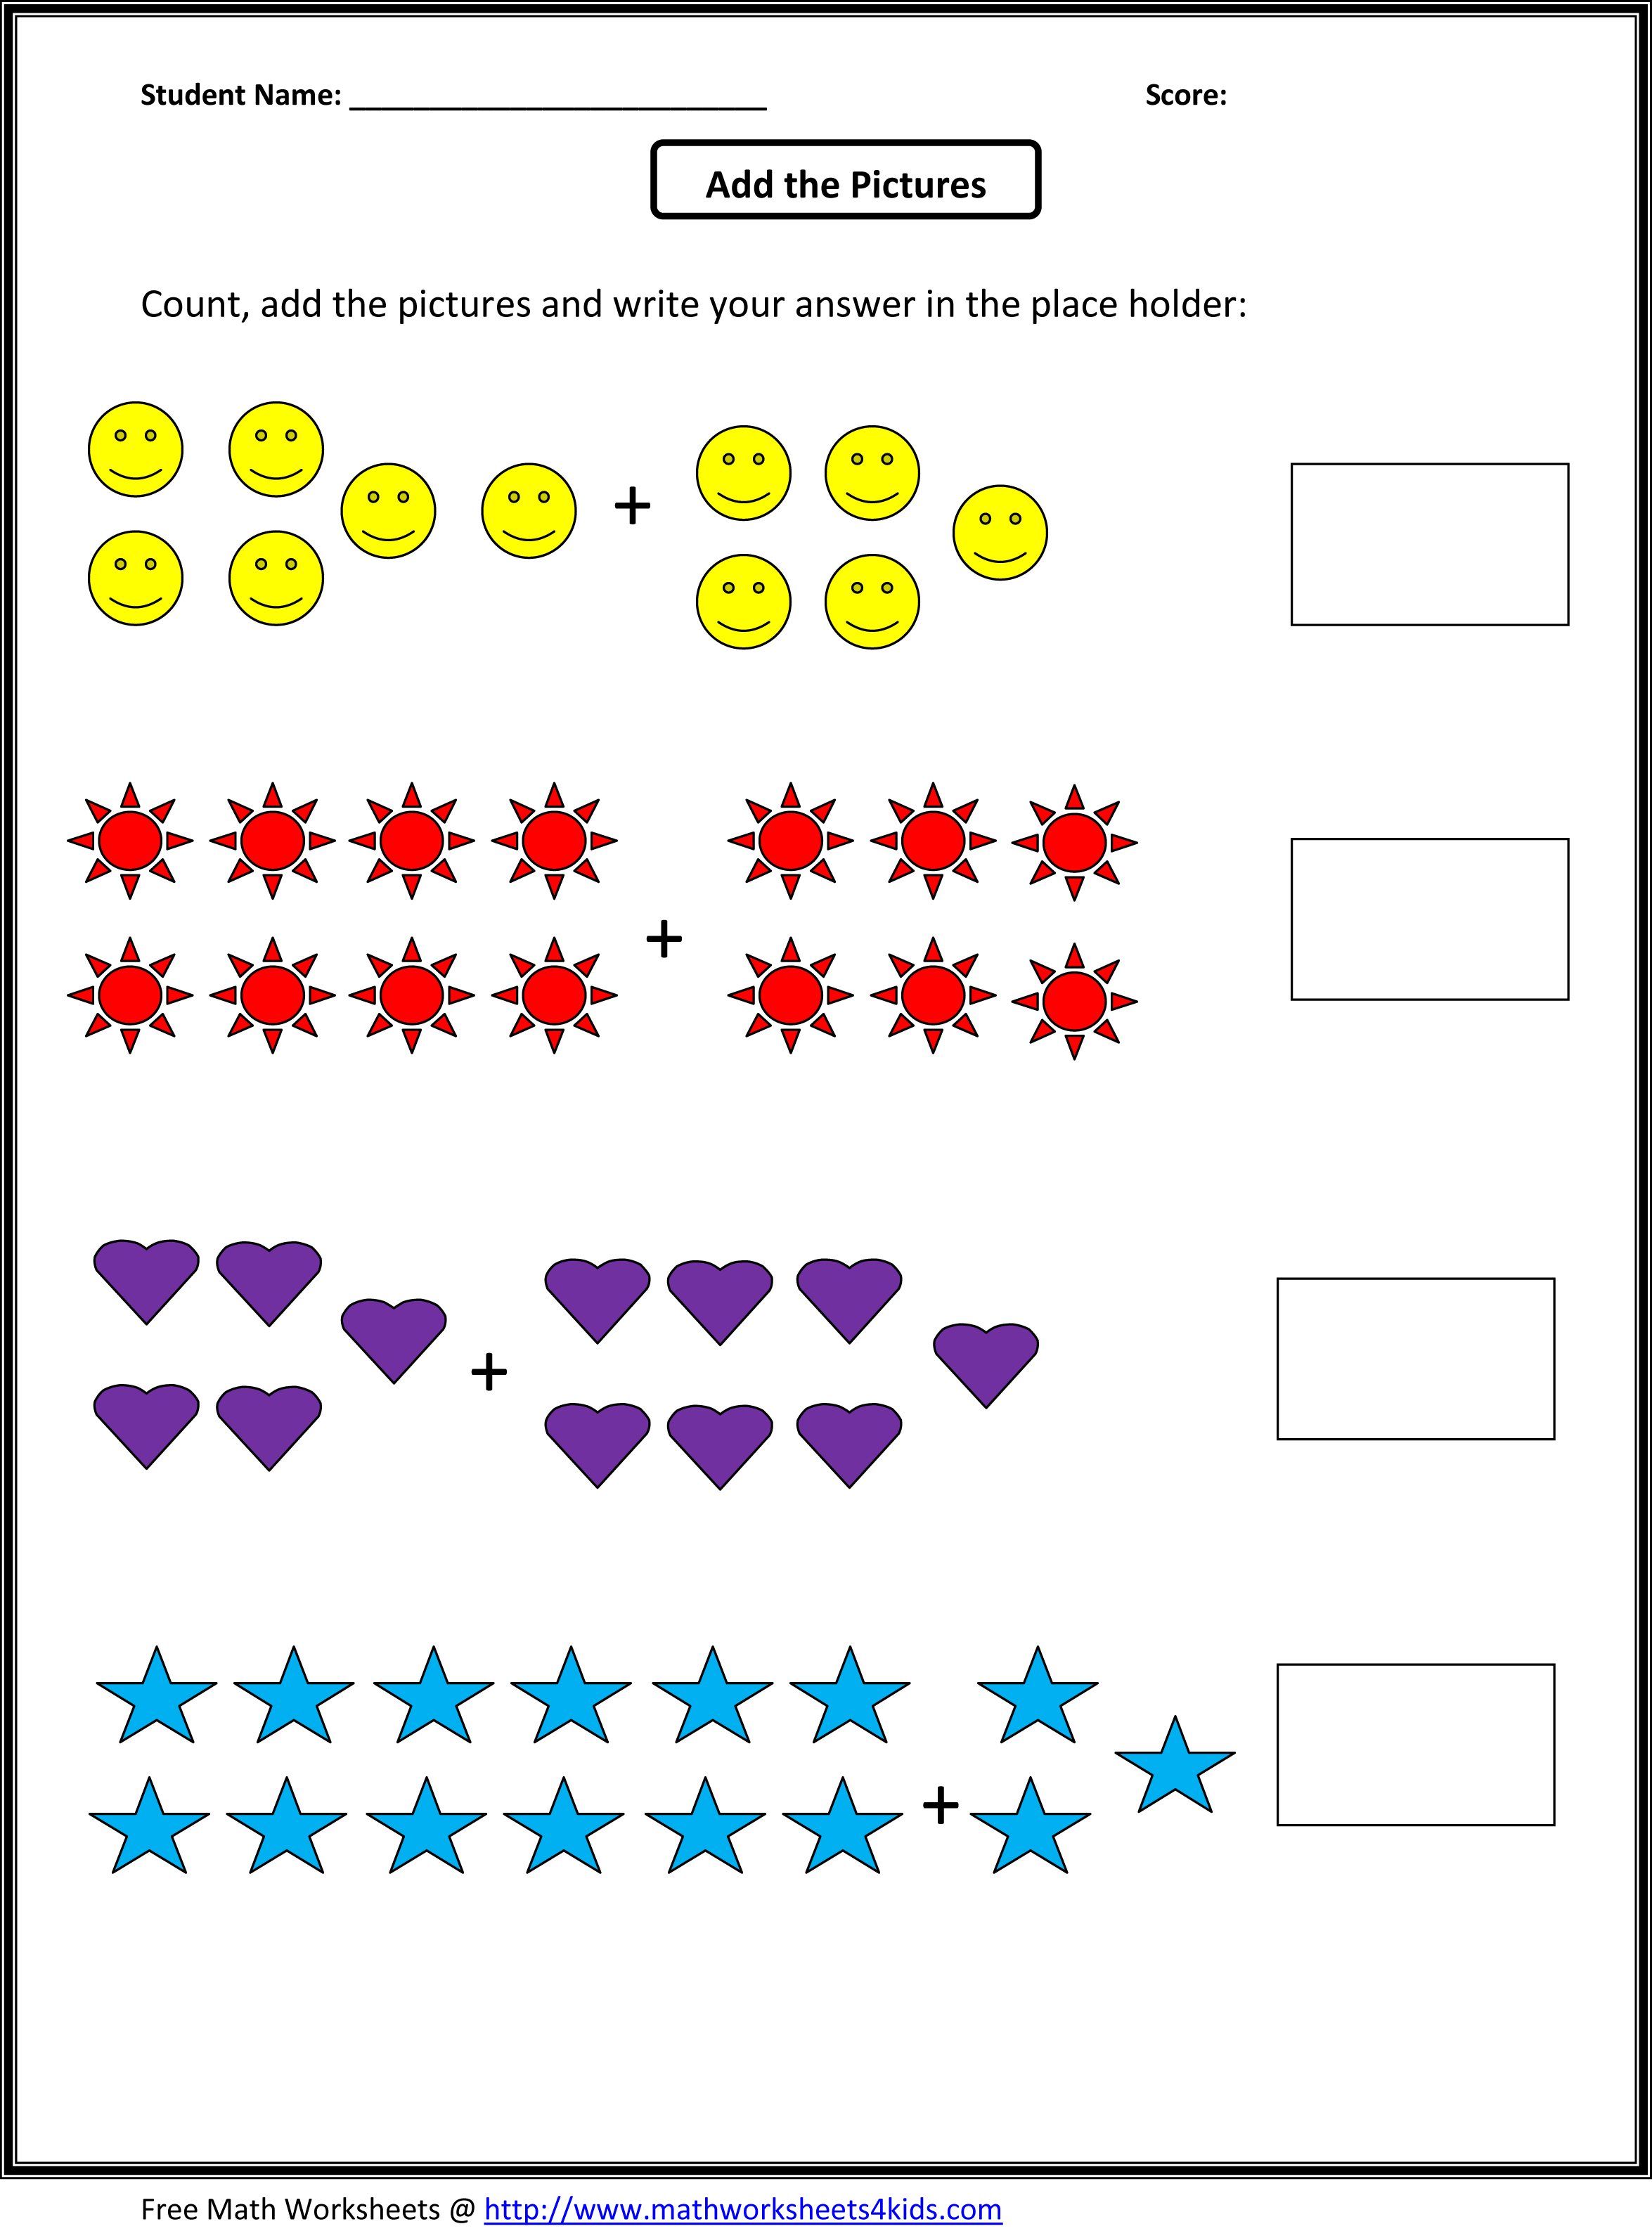 Proatmealus  Terrific Grade  Maths Worksheet  Reocurent With Marvelous Math Worksheets For St Grade Free  Reocurent With Delightful Puns Worksheet Also Comparing Decimals Worksheets Th Grade In Addition Fifth Grade Printable Worksheets And Personal Hygiene Worksheets Kids As Well As Irs Ira Deduction Worksheet Additionally Articles A An The Worksheets From Reocurentcom With Proatmealus  Marvelous Grade  Maths Worksheet  Reocurent With Delightful Math Worksheets For St Grade Free  Reocurent And Terrific Puns Worksheet Also Comparing Decimals Worksheets Th Grade In Addition Fifth Grade Printable Worksheets From Reocurentcom